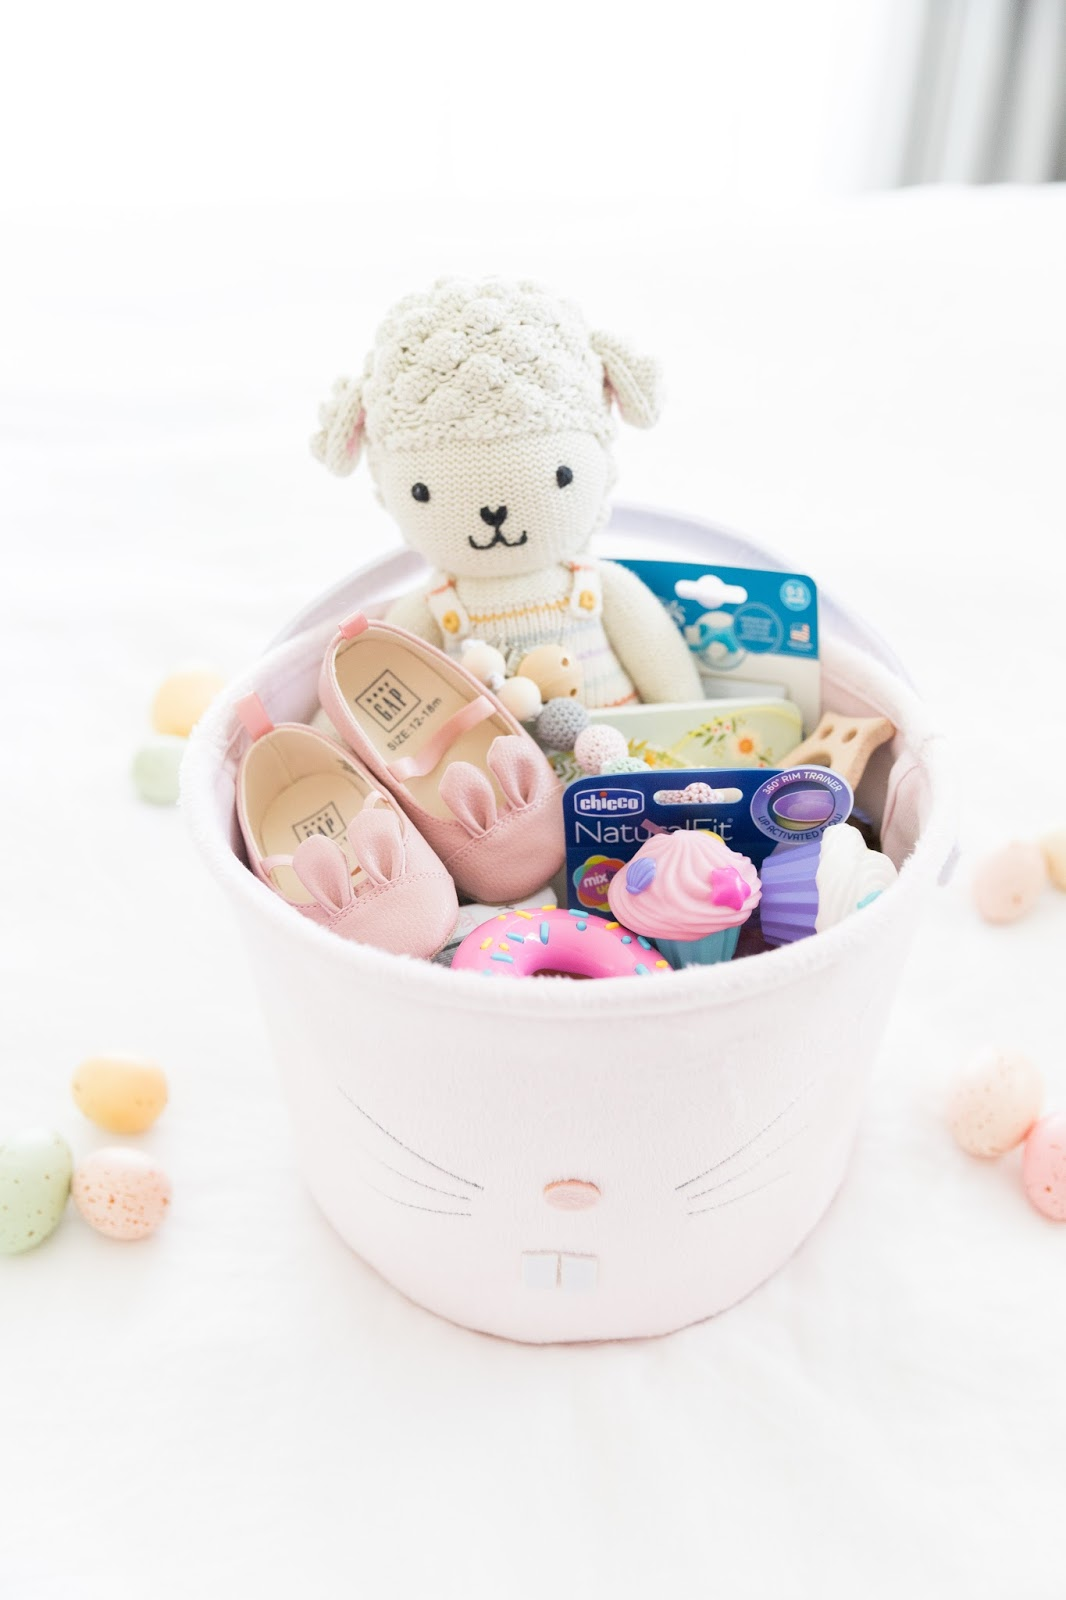 Easter baskets for baby and toddler sweet september even though hannah is only 9 months old i still wanted to make her a basket since its her first easter heres a list of the gifts i put in her basket negle Gallery